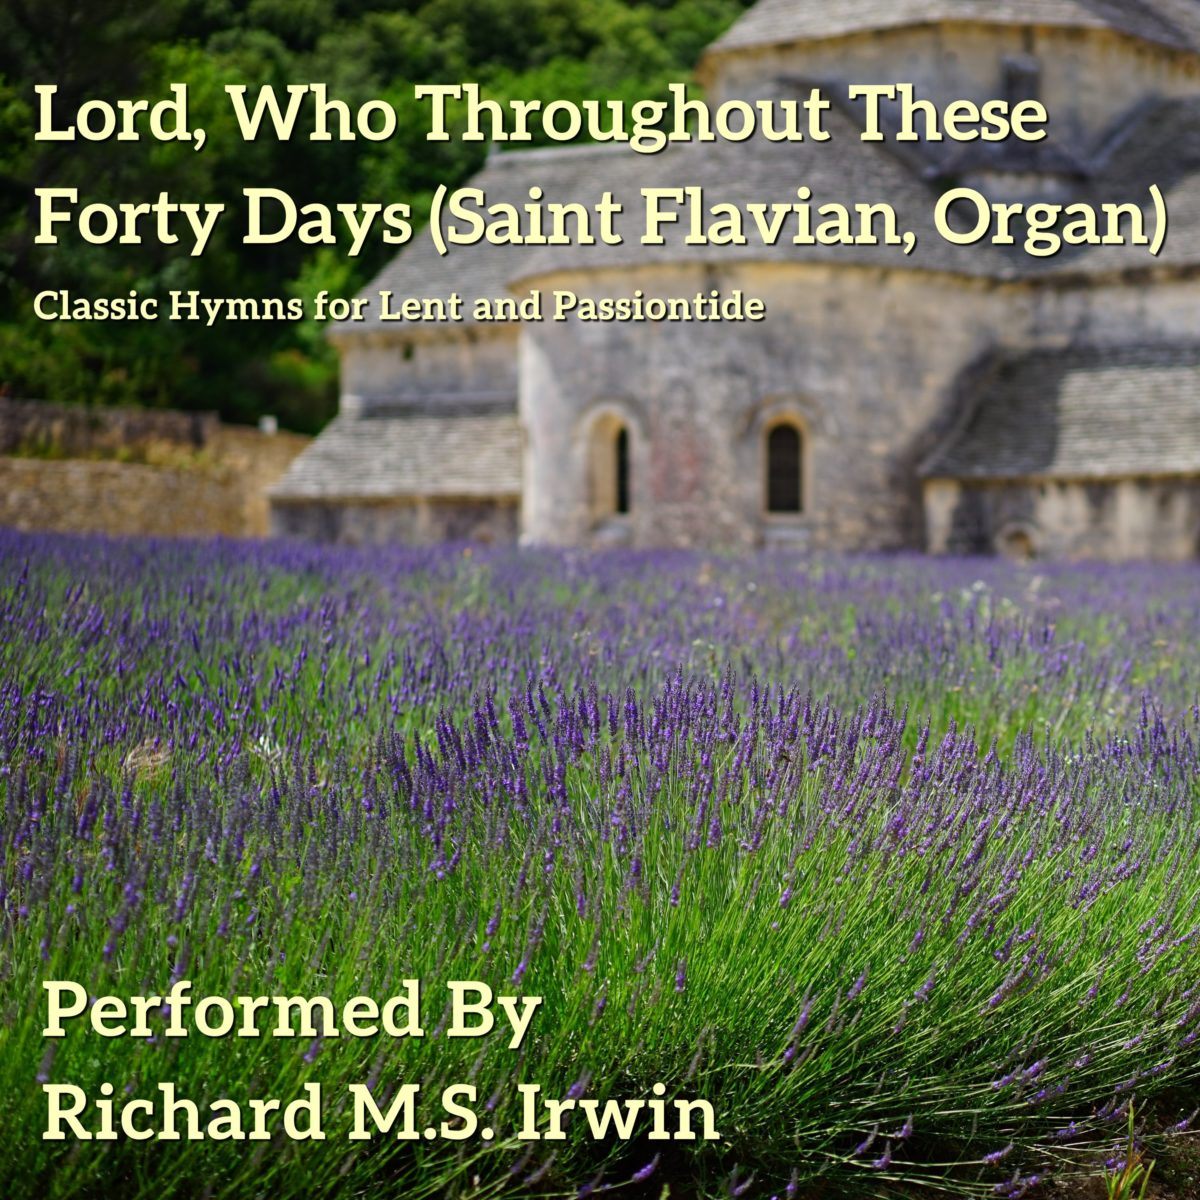 Lord Who Throughout These Forty Days (Saint Flavian, Organ, 5 Verses)